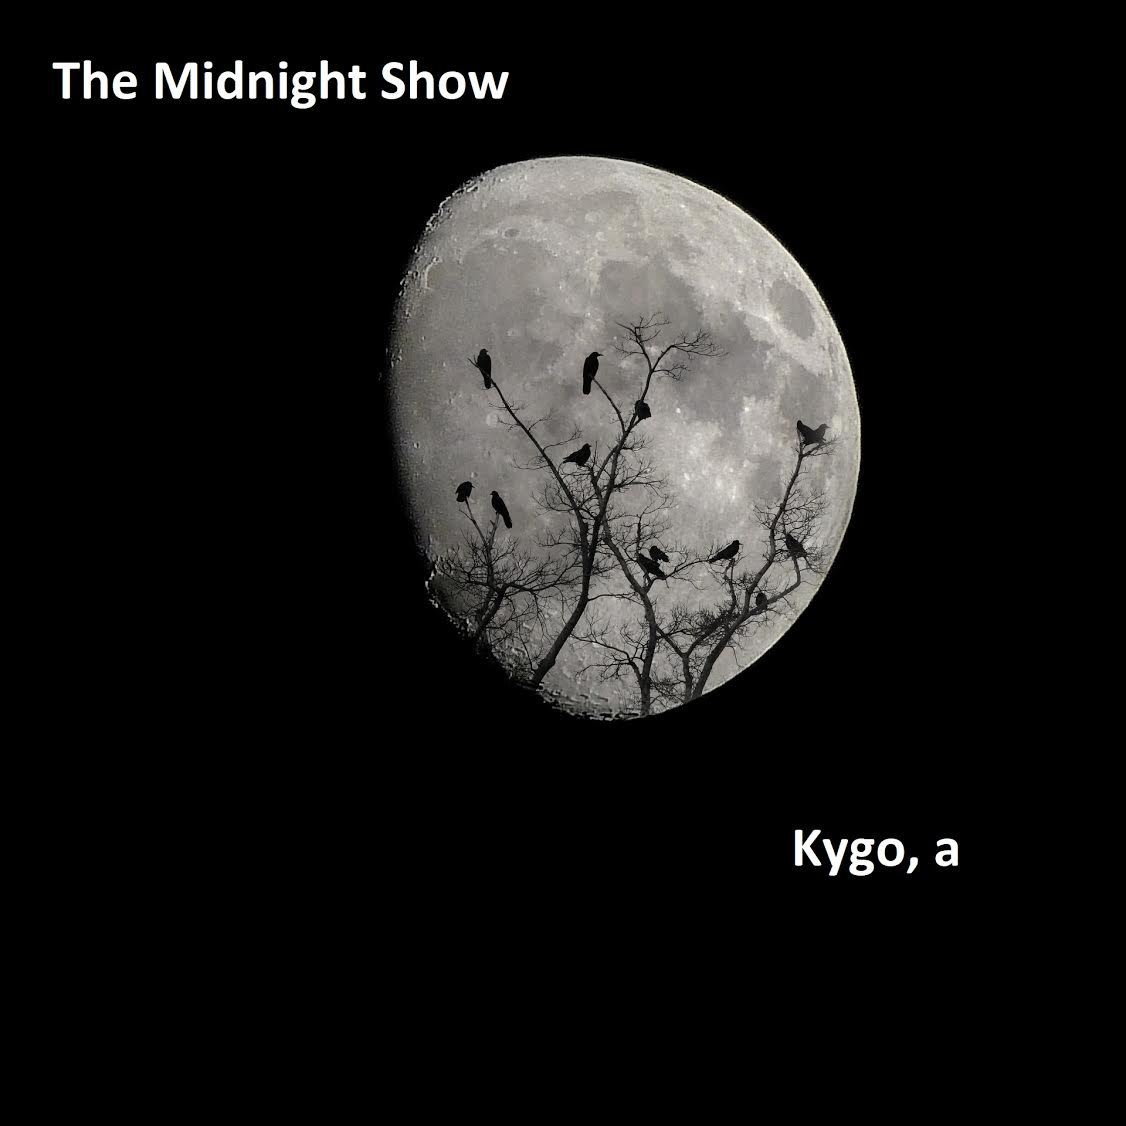 Kygo, A : Welcome to The Midnight Show